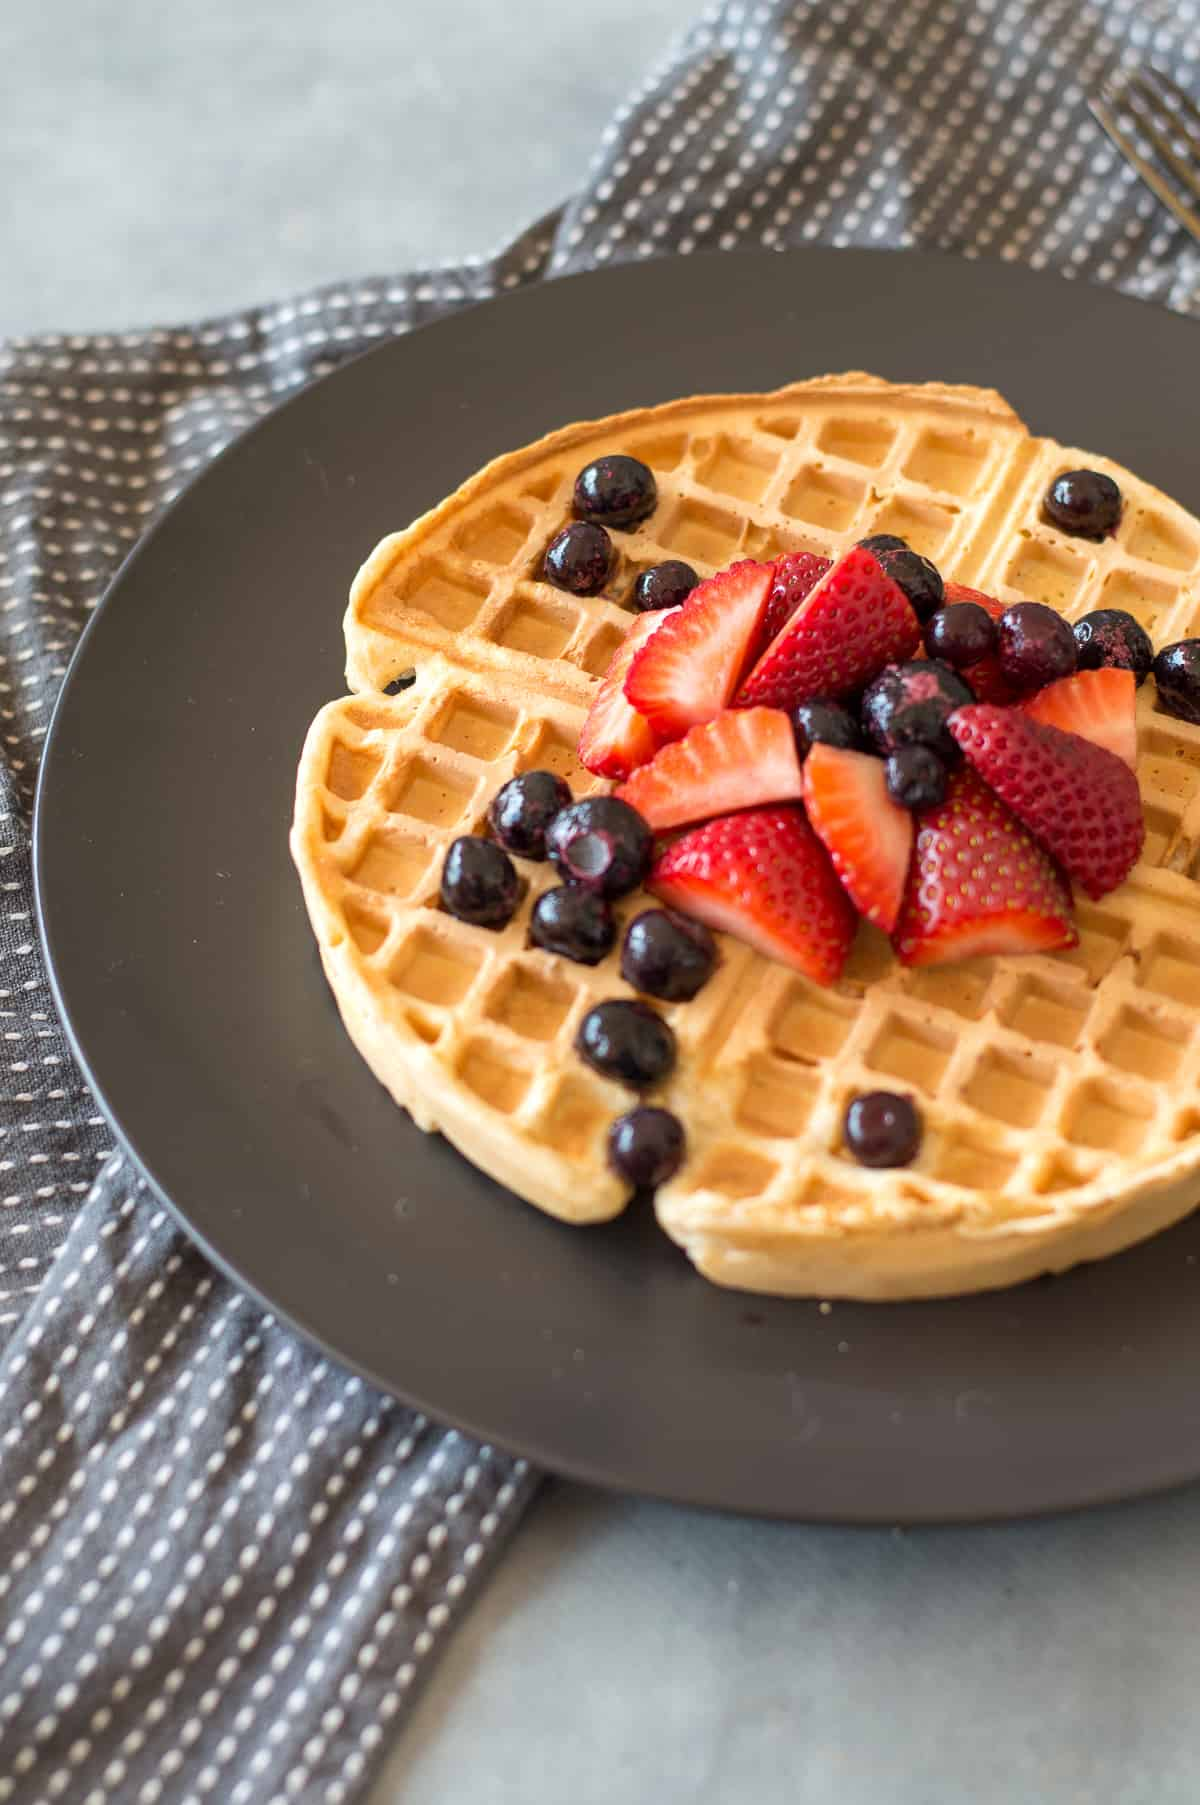 Wholemeal Waffles topped with strawberries and blueberries on dark grey plate